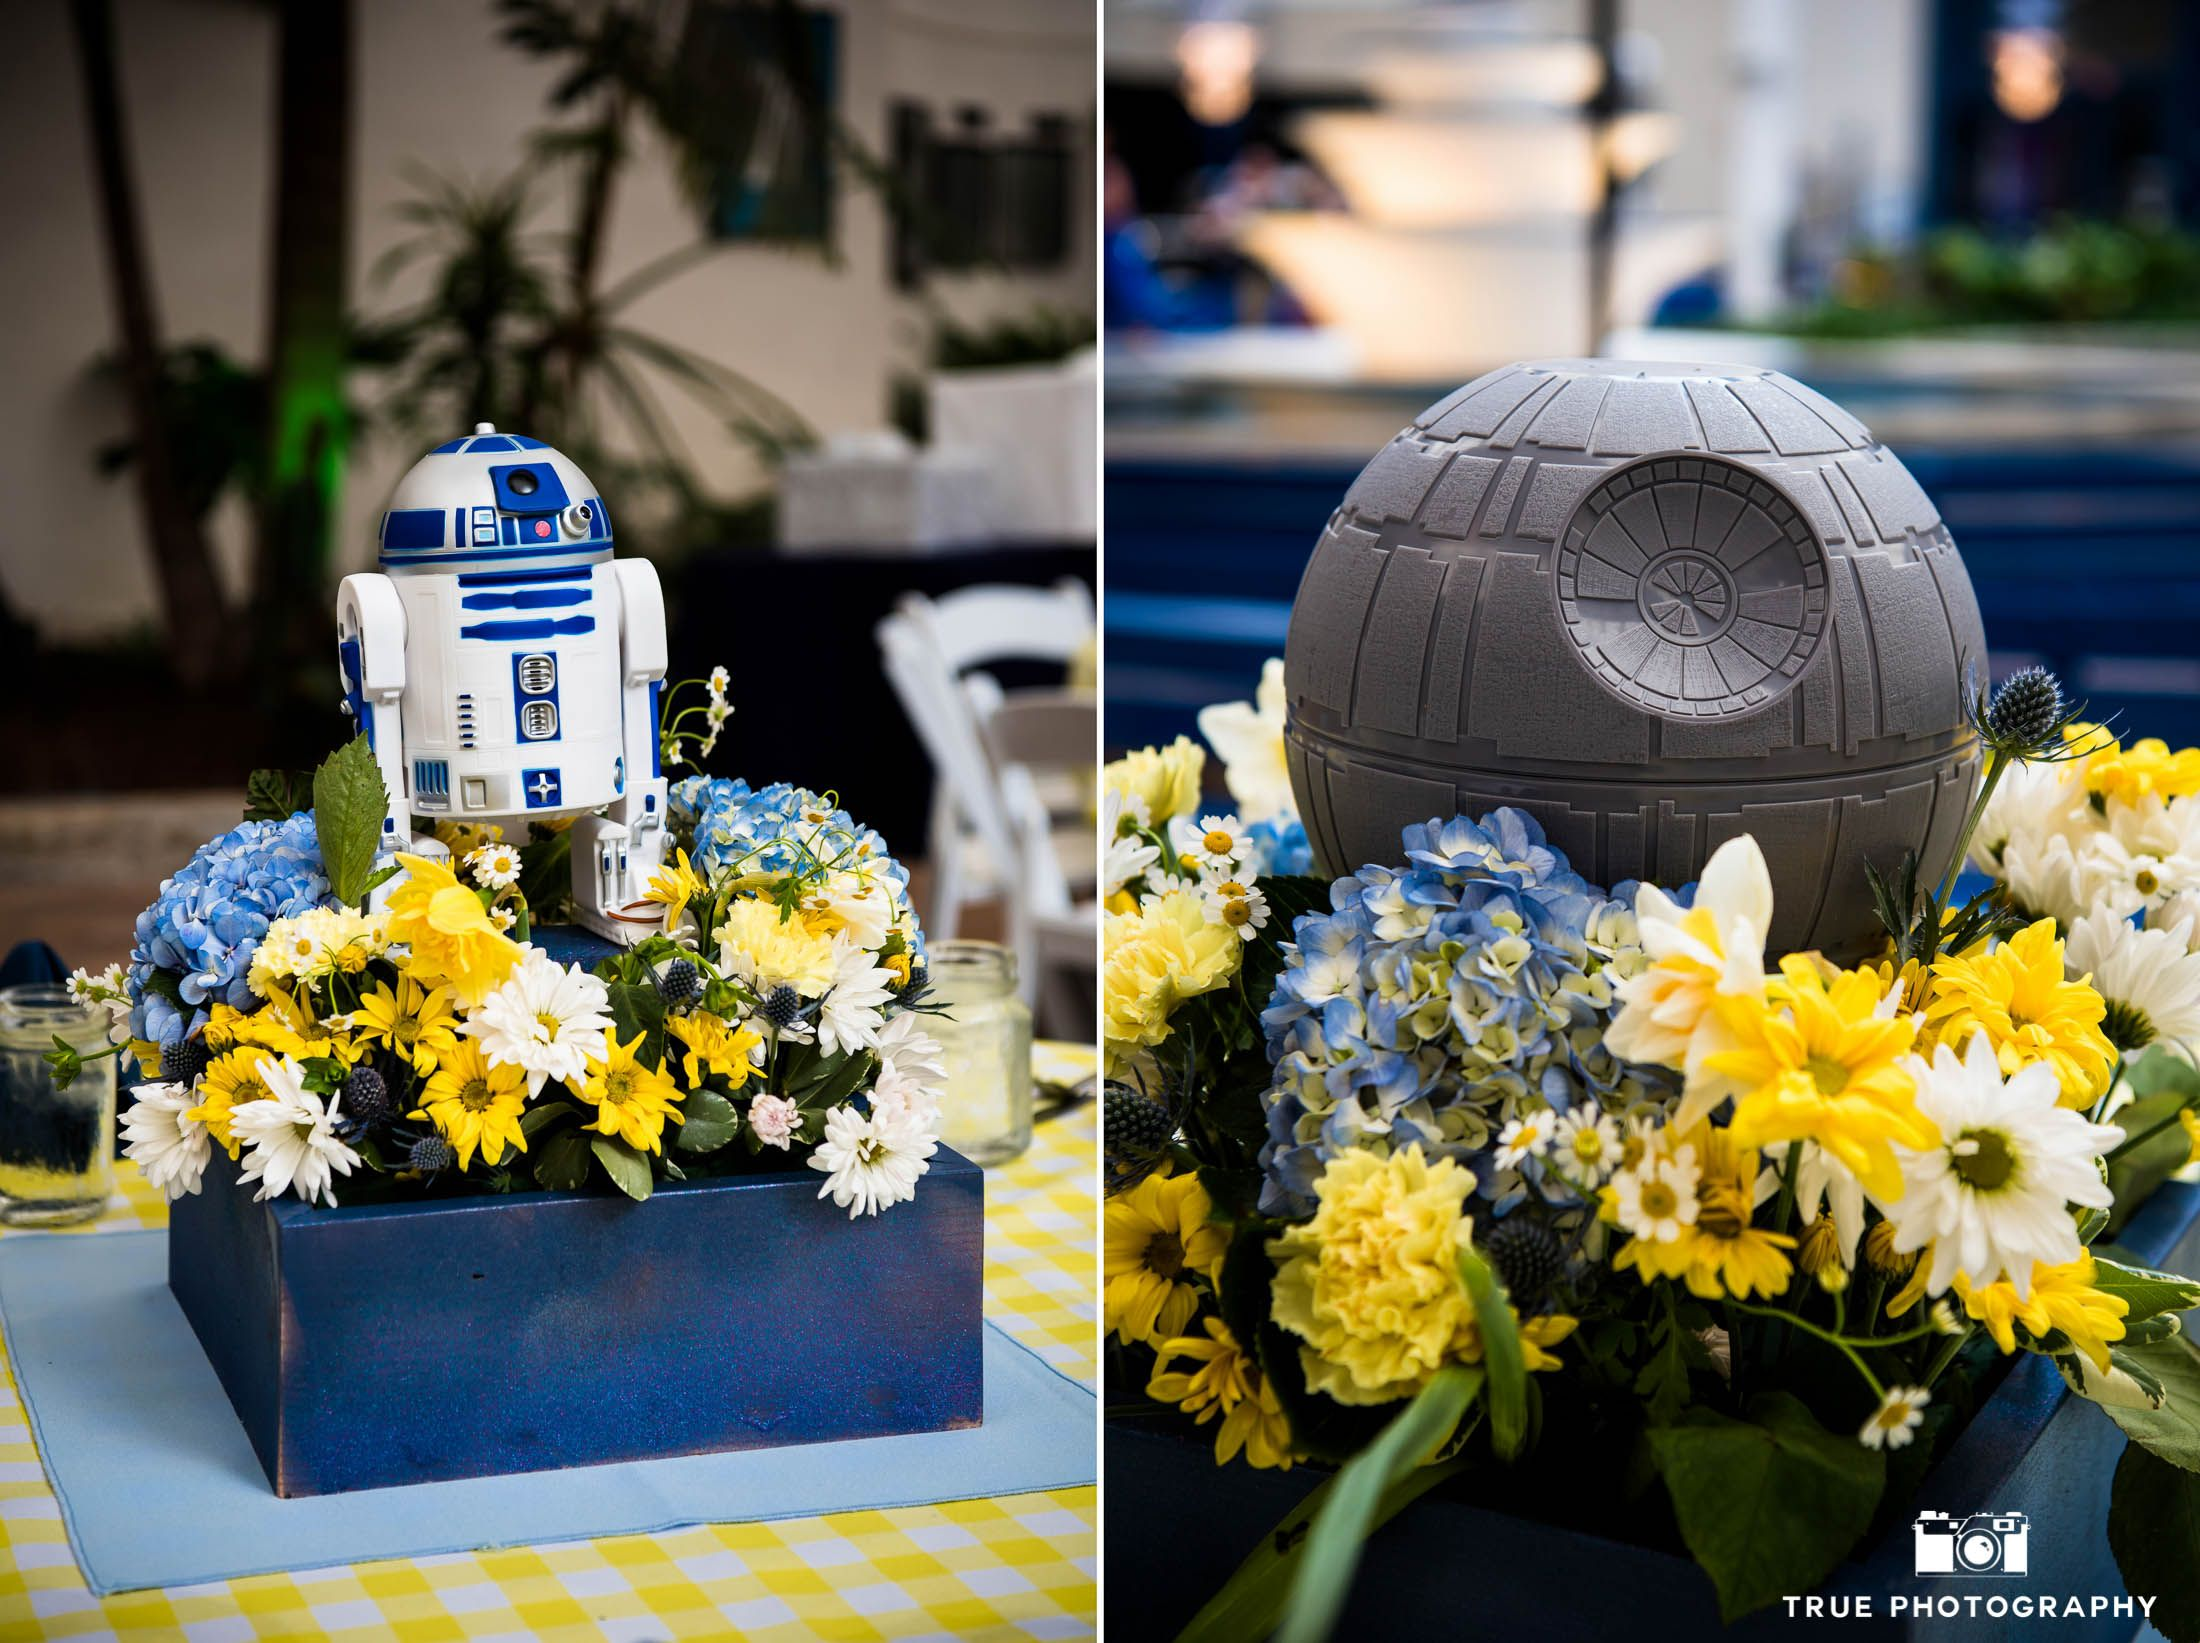 Star Wars Themed Wedding Centerpieces Exploring Mars